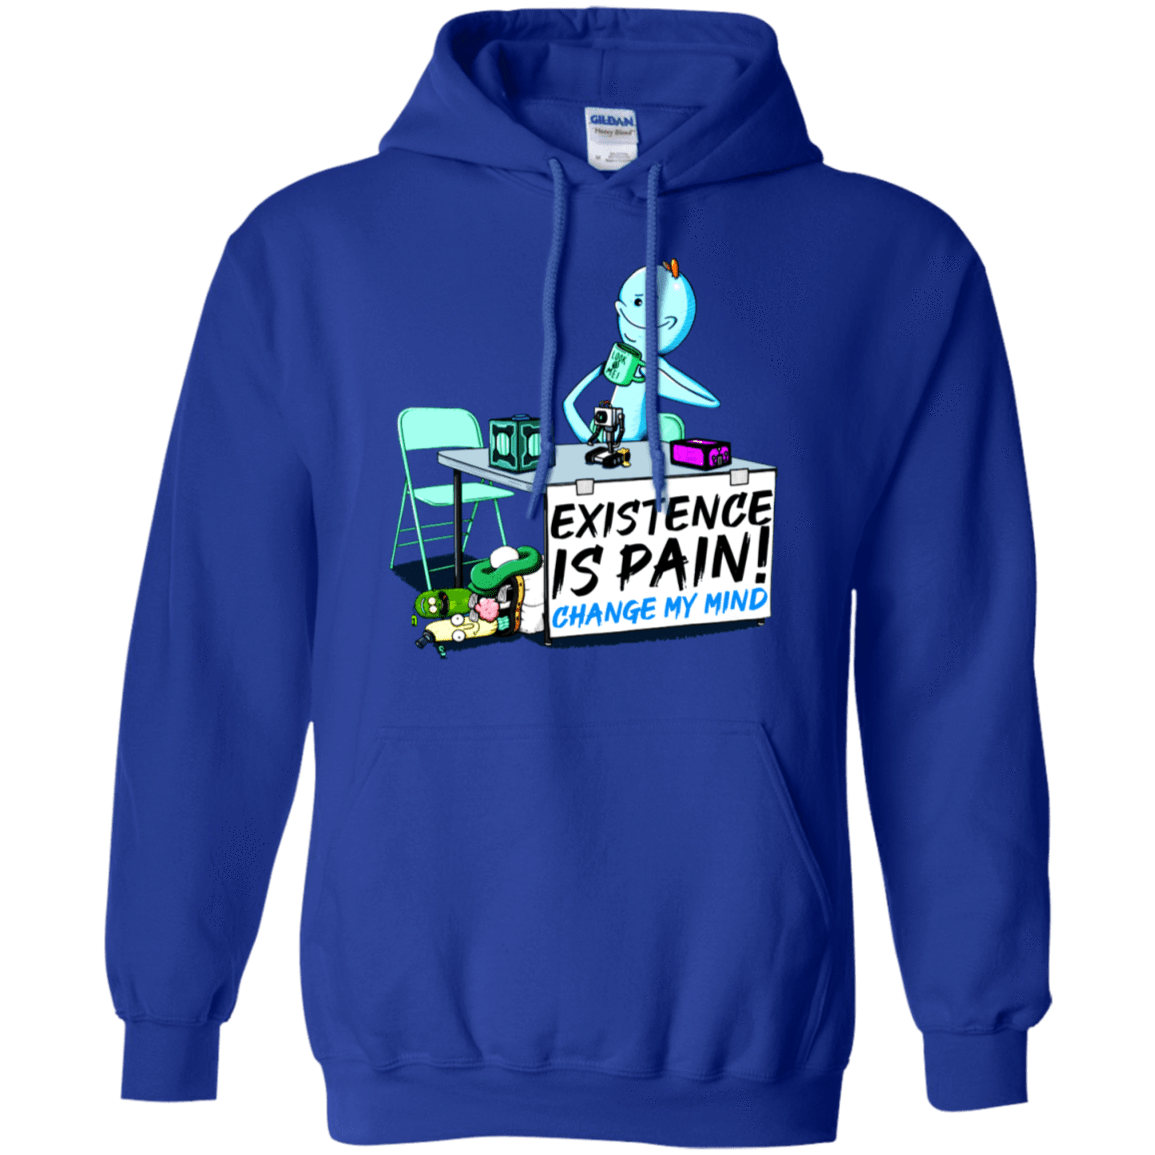 Rick And Morty: Mr. Meeseeks Existence Is Pain Change My Mind T-Shirts & Hoodies 541-4765-76151406-23175 - Tee Ript